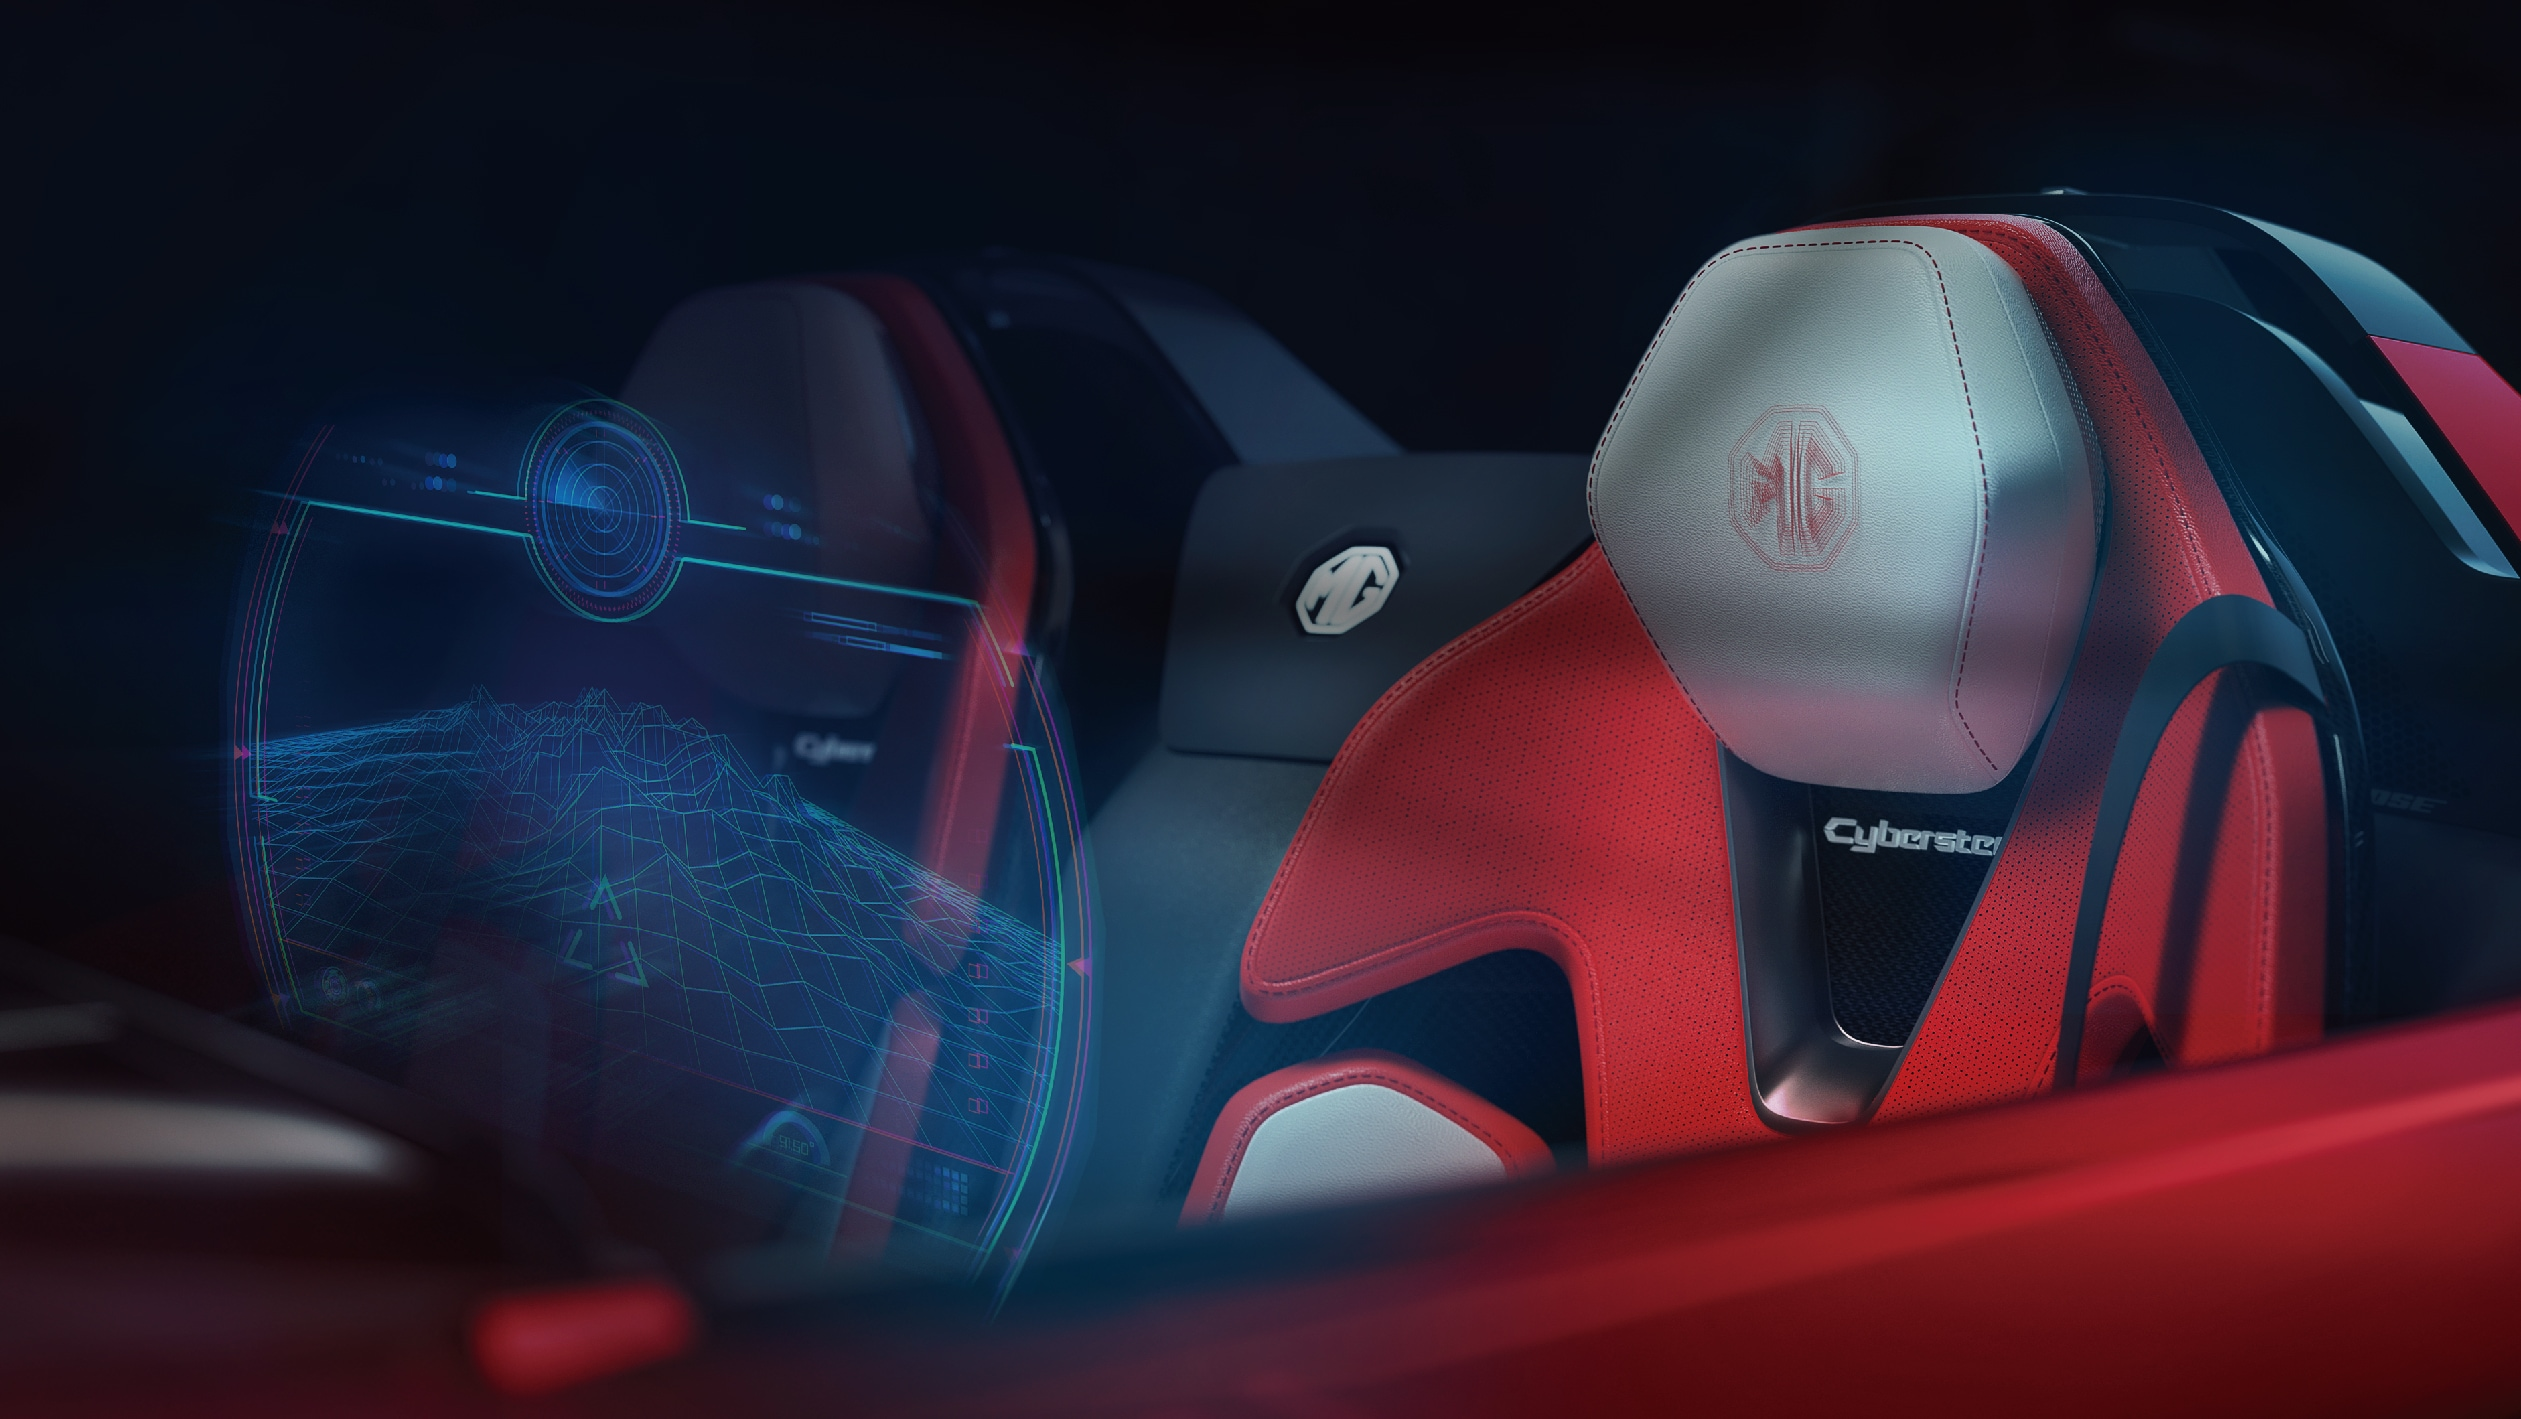 The MG Cyberster gets zero gravity seats inside the cabin with a multi-surface splicing design, providing strong back support for the driver from all angles,